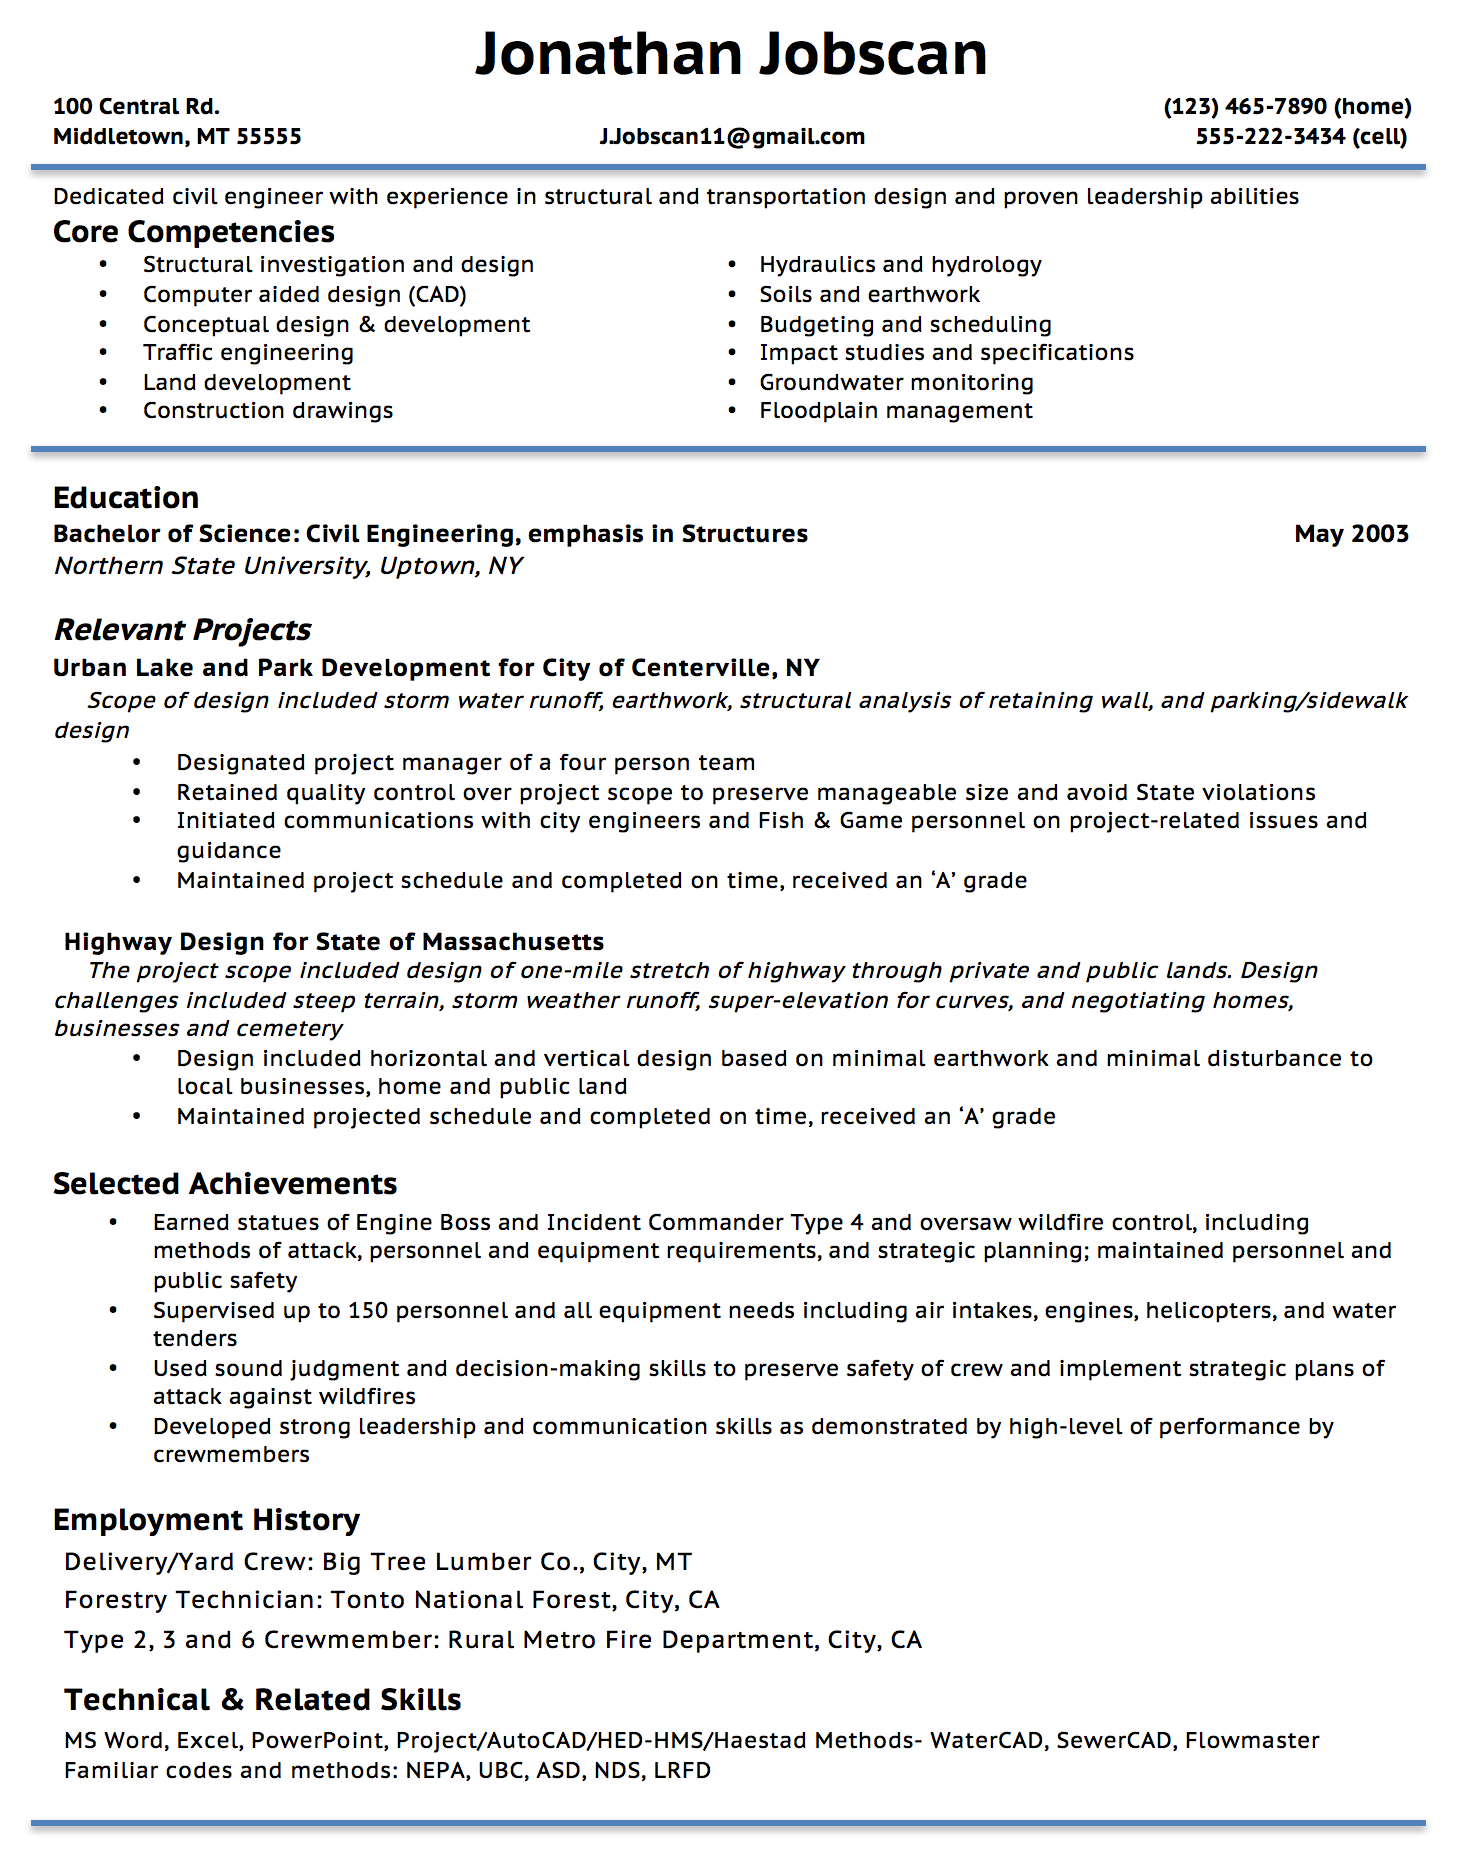 Opposenewapstandardsus  Ravishing Resume Writing Guide  Jobscan With Fetching Example Of A Functional Resume Format With Breathtaking What Is A Resume Cv Also What Is The Difference Between A Resume And A Cv In Addition Best Font To Use For Resume And Professional Resume Template Free As Well As Medical Assistant Resume Objective Additionally Linkedin To Resume From Jobscanco With Opposenewapstandardsus  Fetching Resume Writing Guide  Jobscan With Breathtaking Example Of A Functional Resume Format And Ravishing What Is A Resume Cv Also What Is The Difference Between A Resume And A Cv In Addition Best Font To Use For Resume From Jobscanco